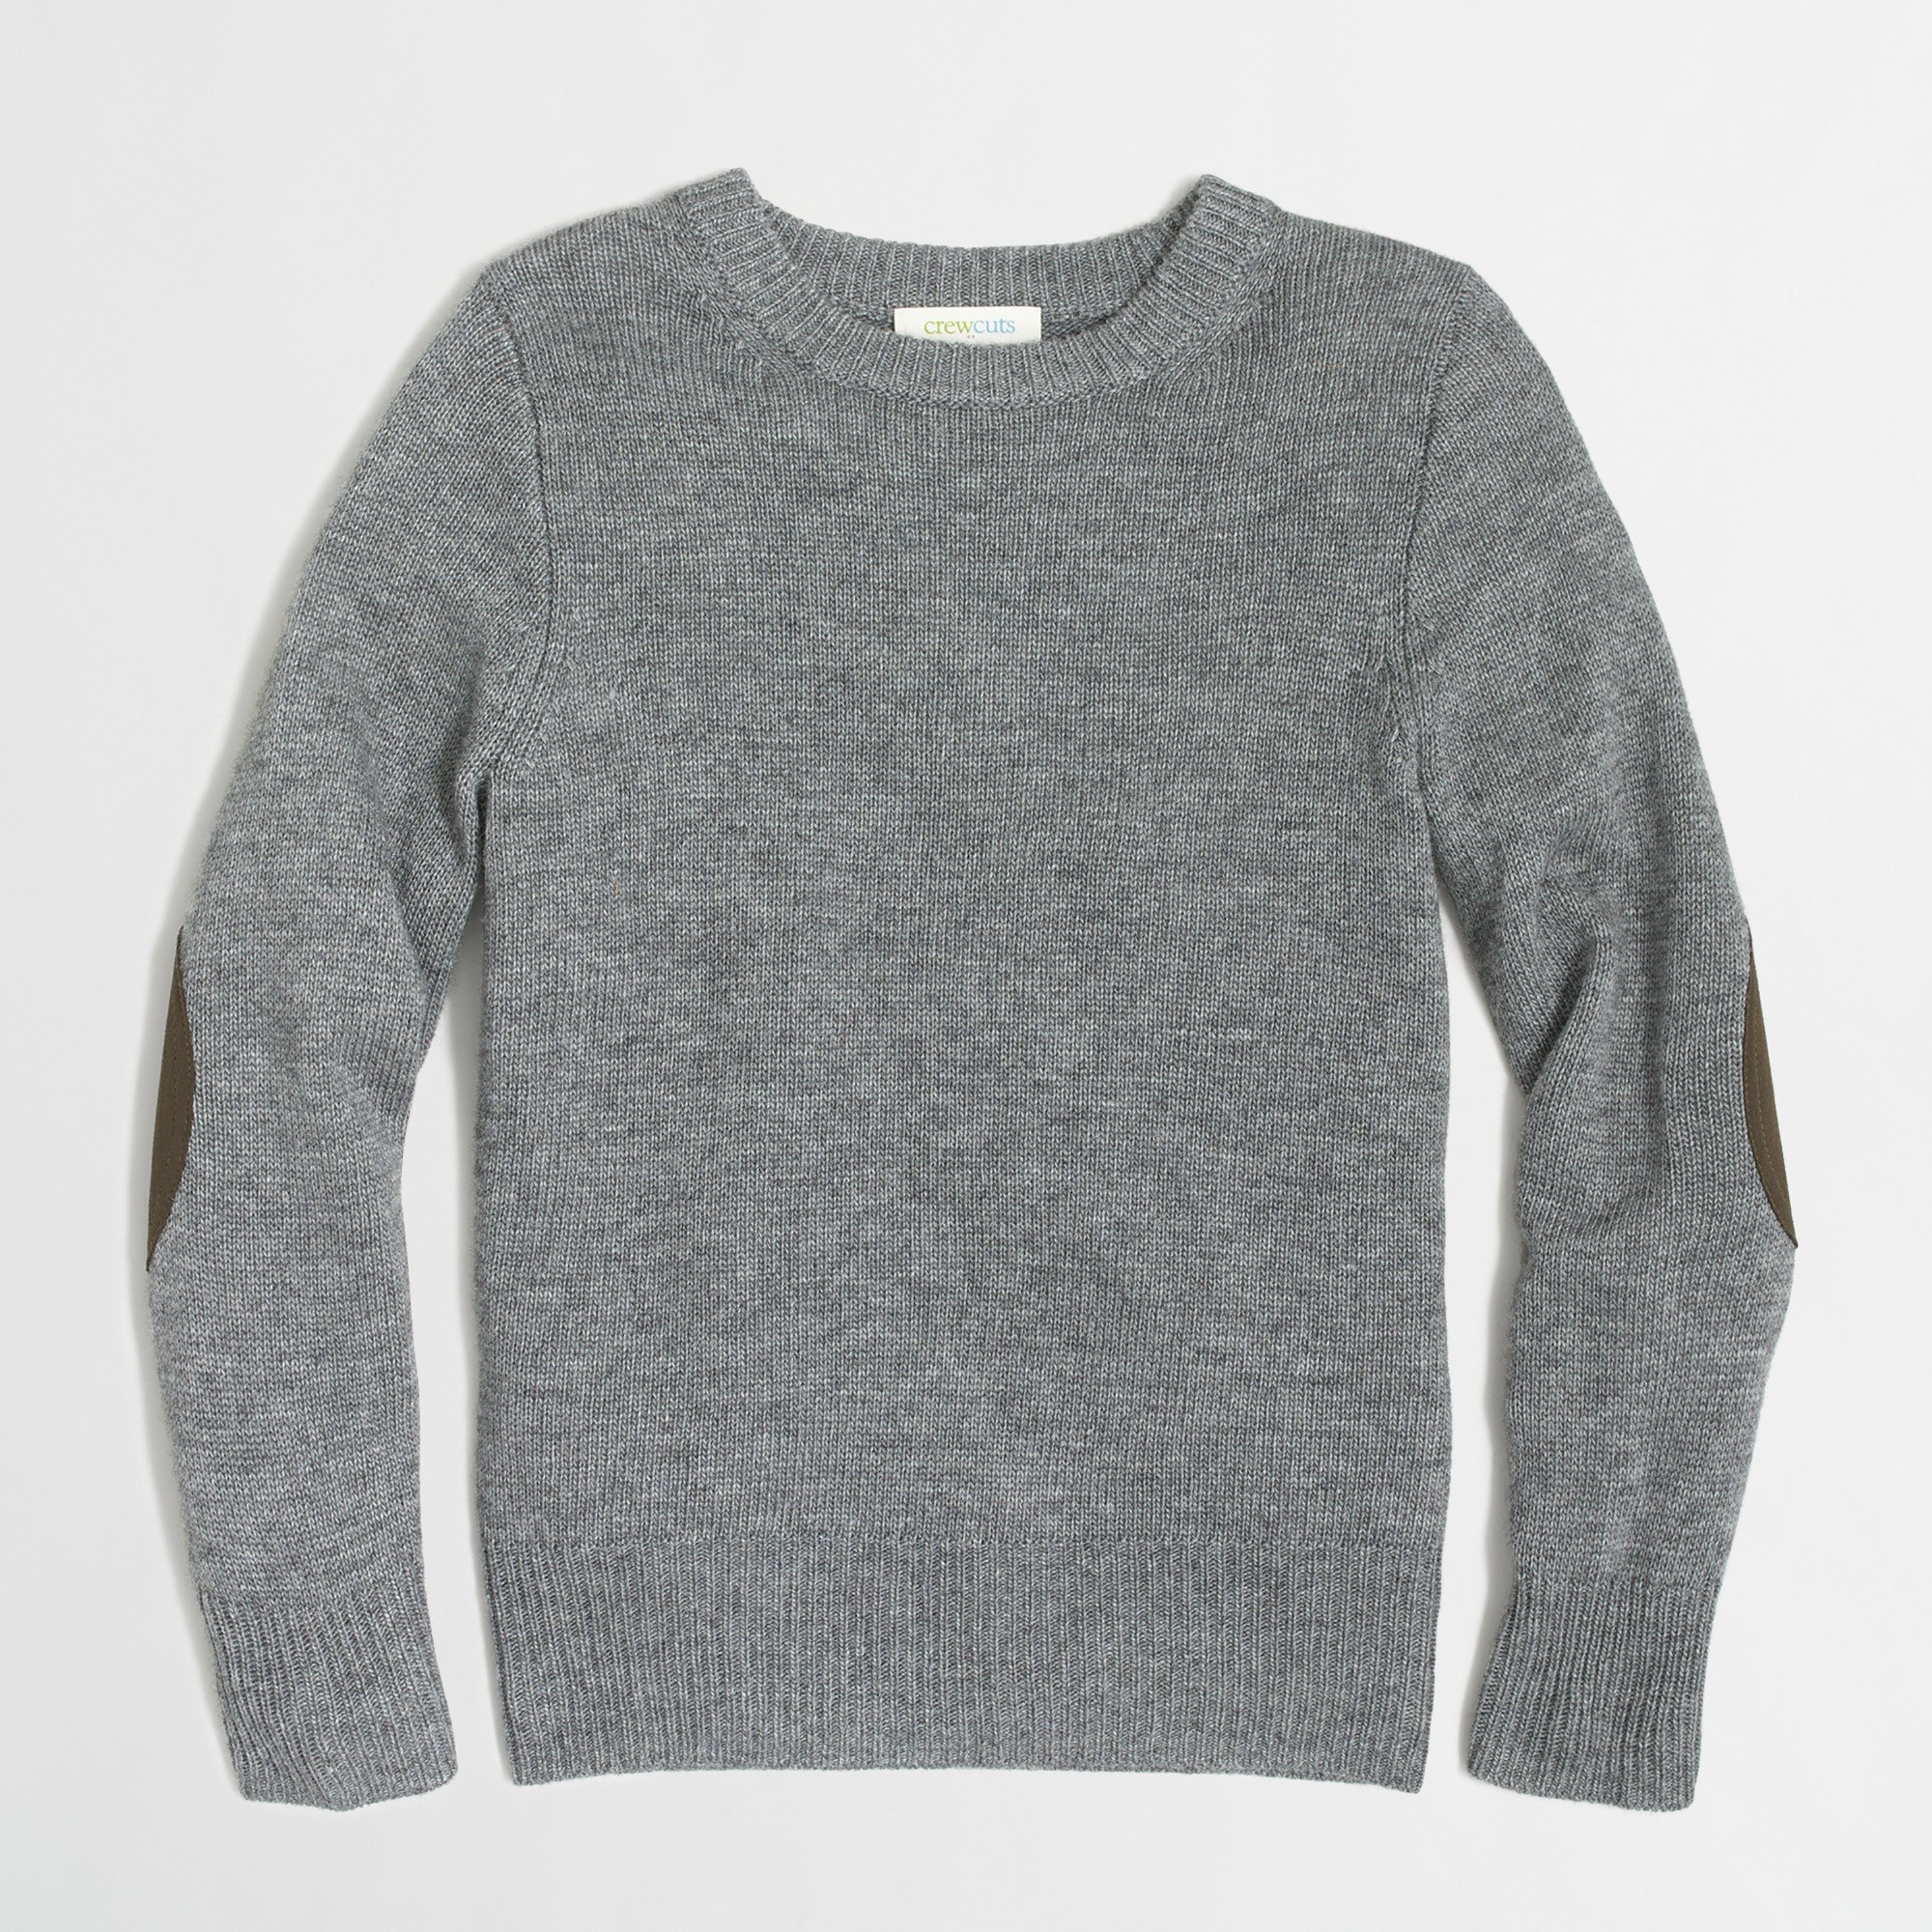 Boys' elbow-patch crewneck sweater : FactoryBoys Crewnecks | Factory